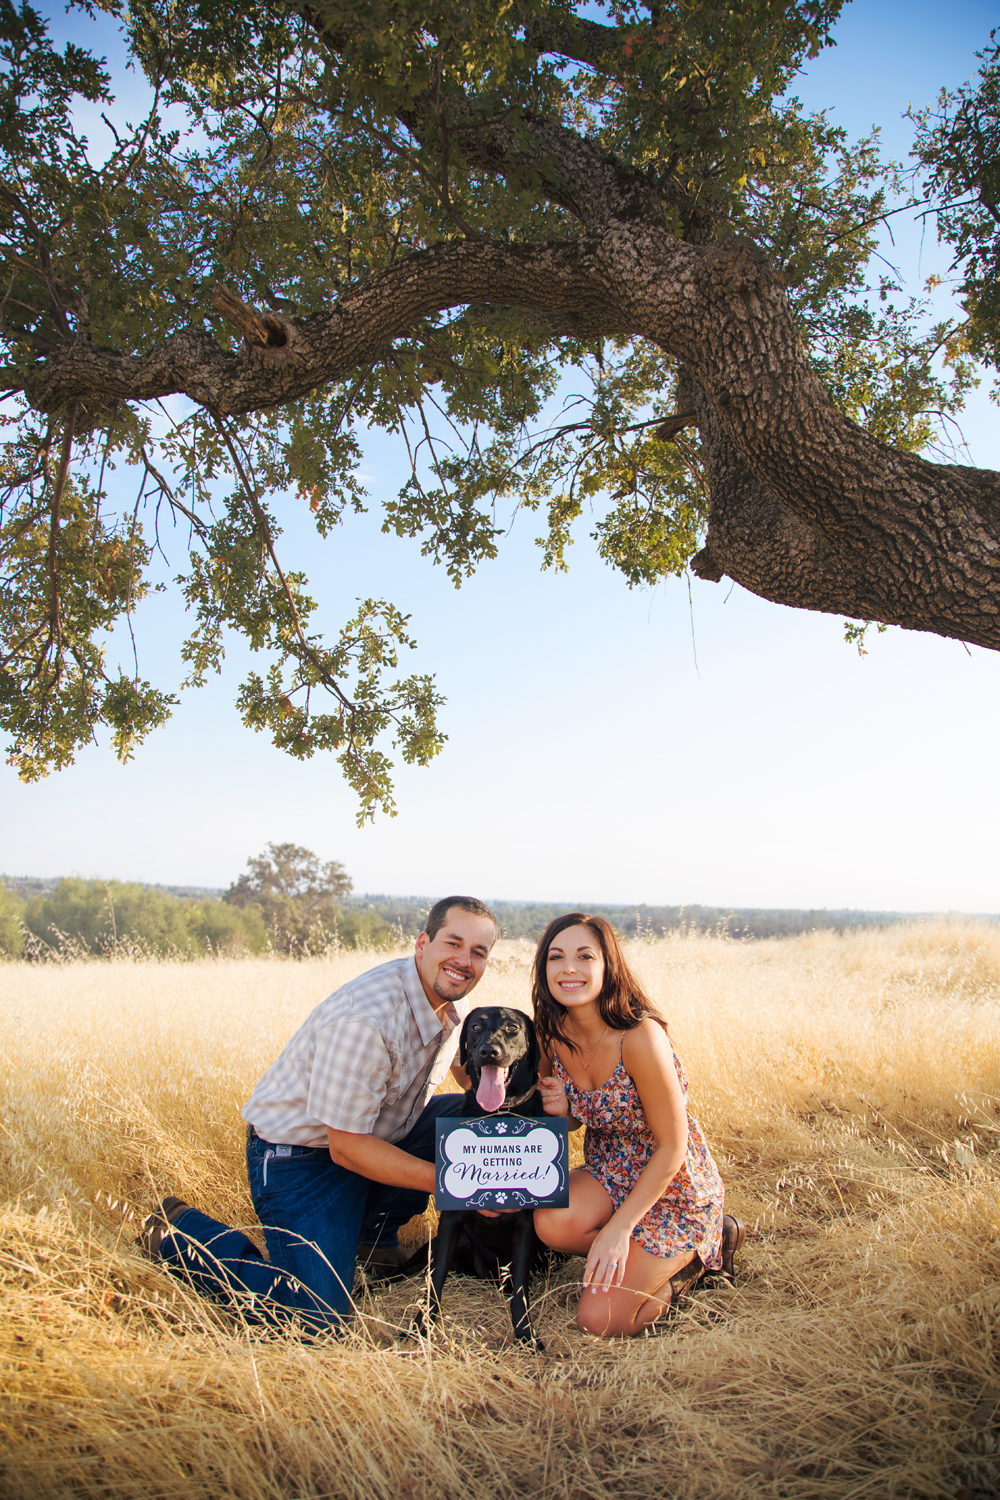 Engagement-with-Dog-photography-Upper-Bidwel-Park-Chico-4-2.jpg